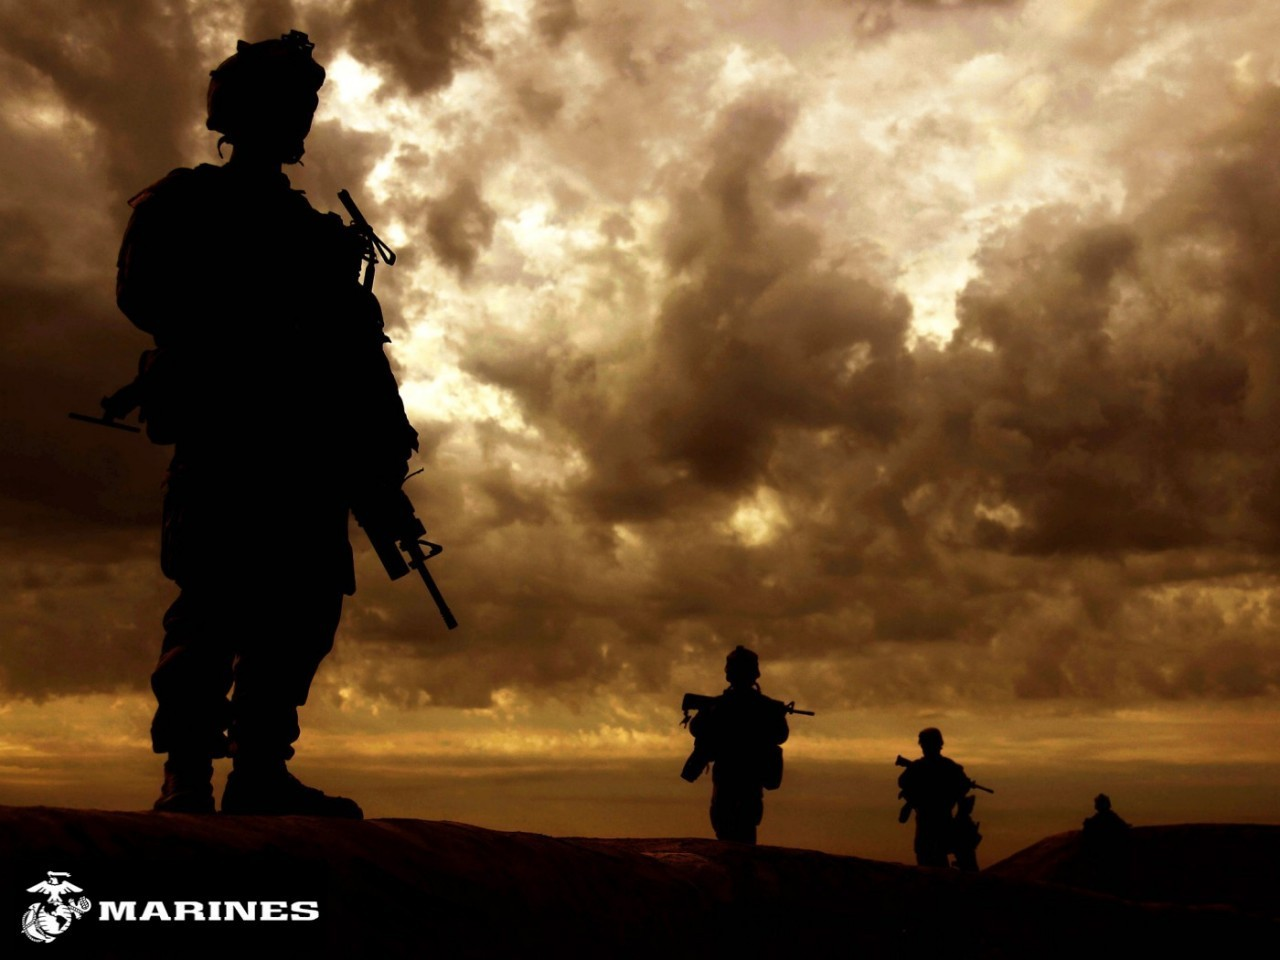 Military images us army HD wallpaper and background photos 1280x960